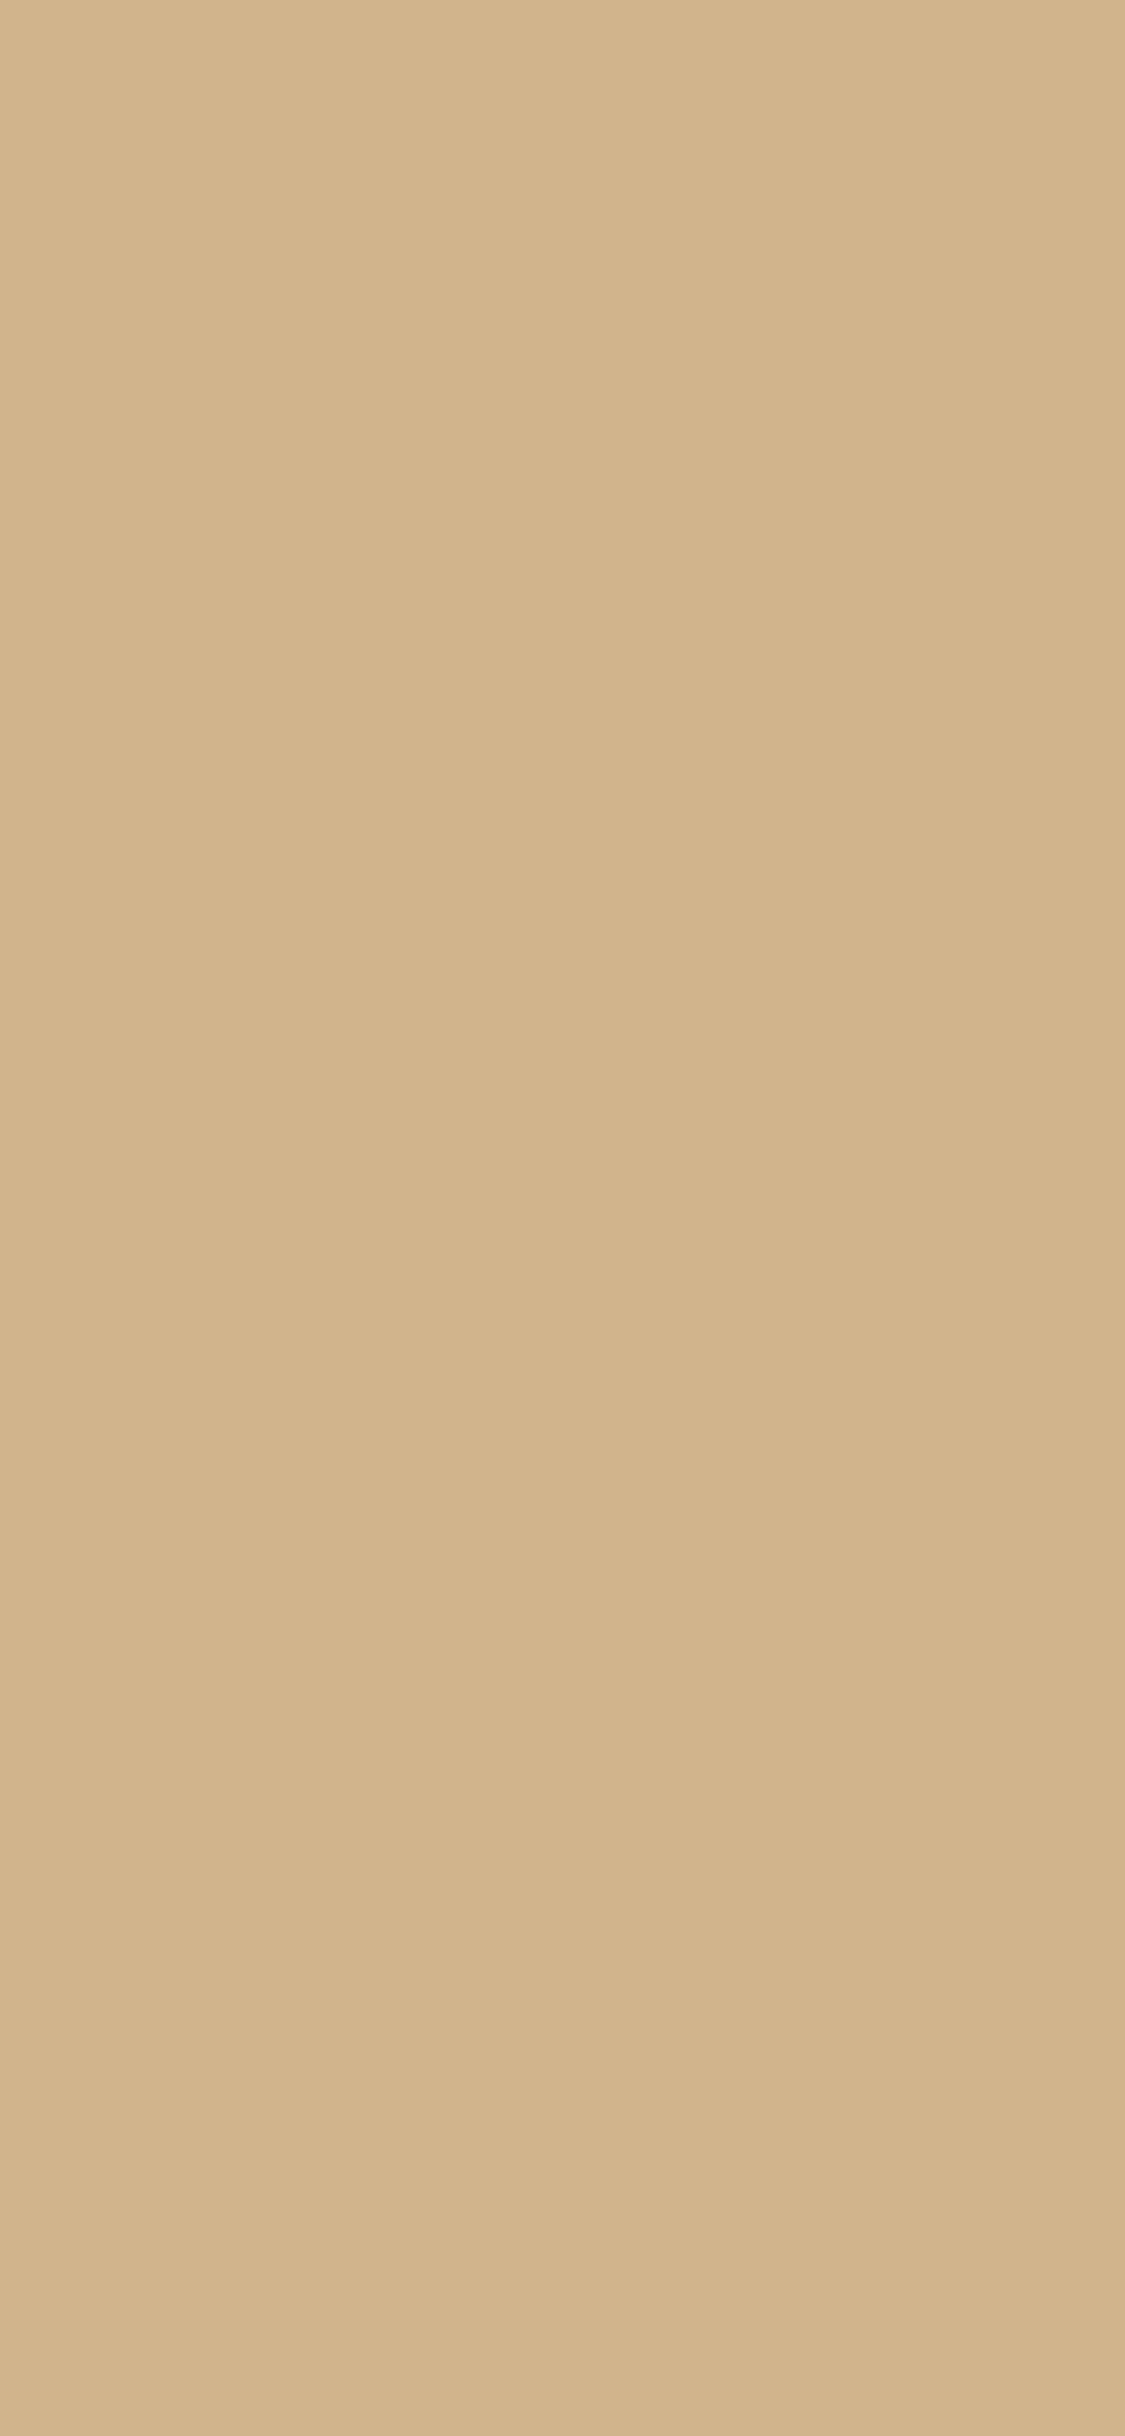 1125x2436 Tan Solid Color Background